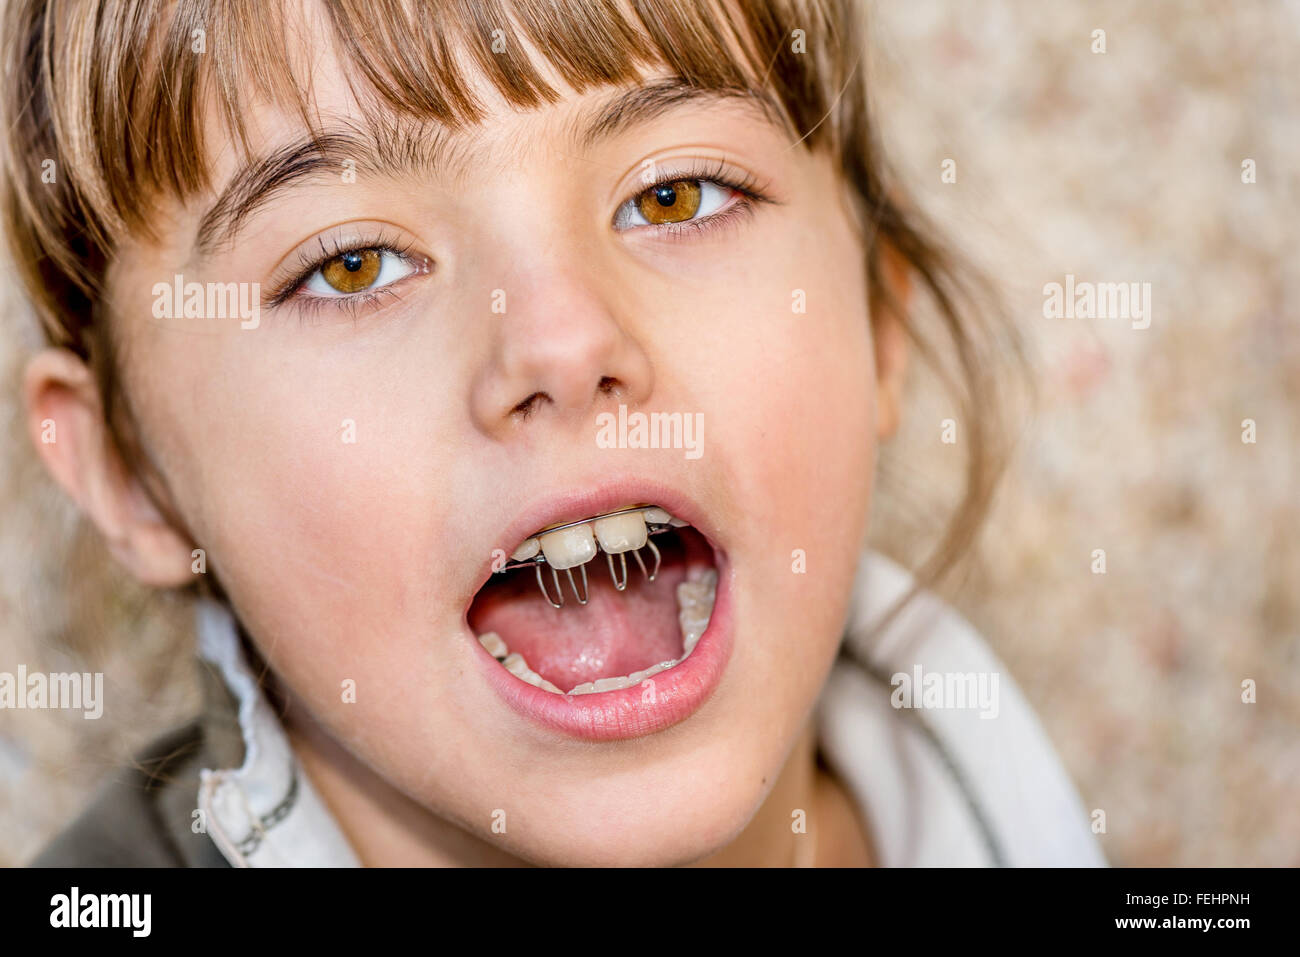 Crooked Teeth Stock Photos & Crooked Teeth Stock Images ...